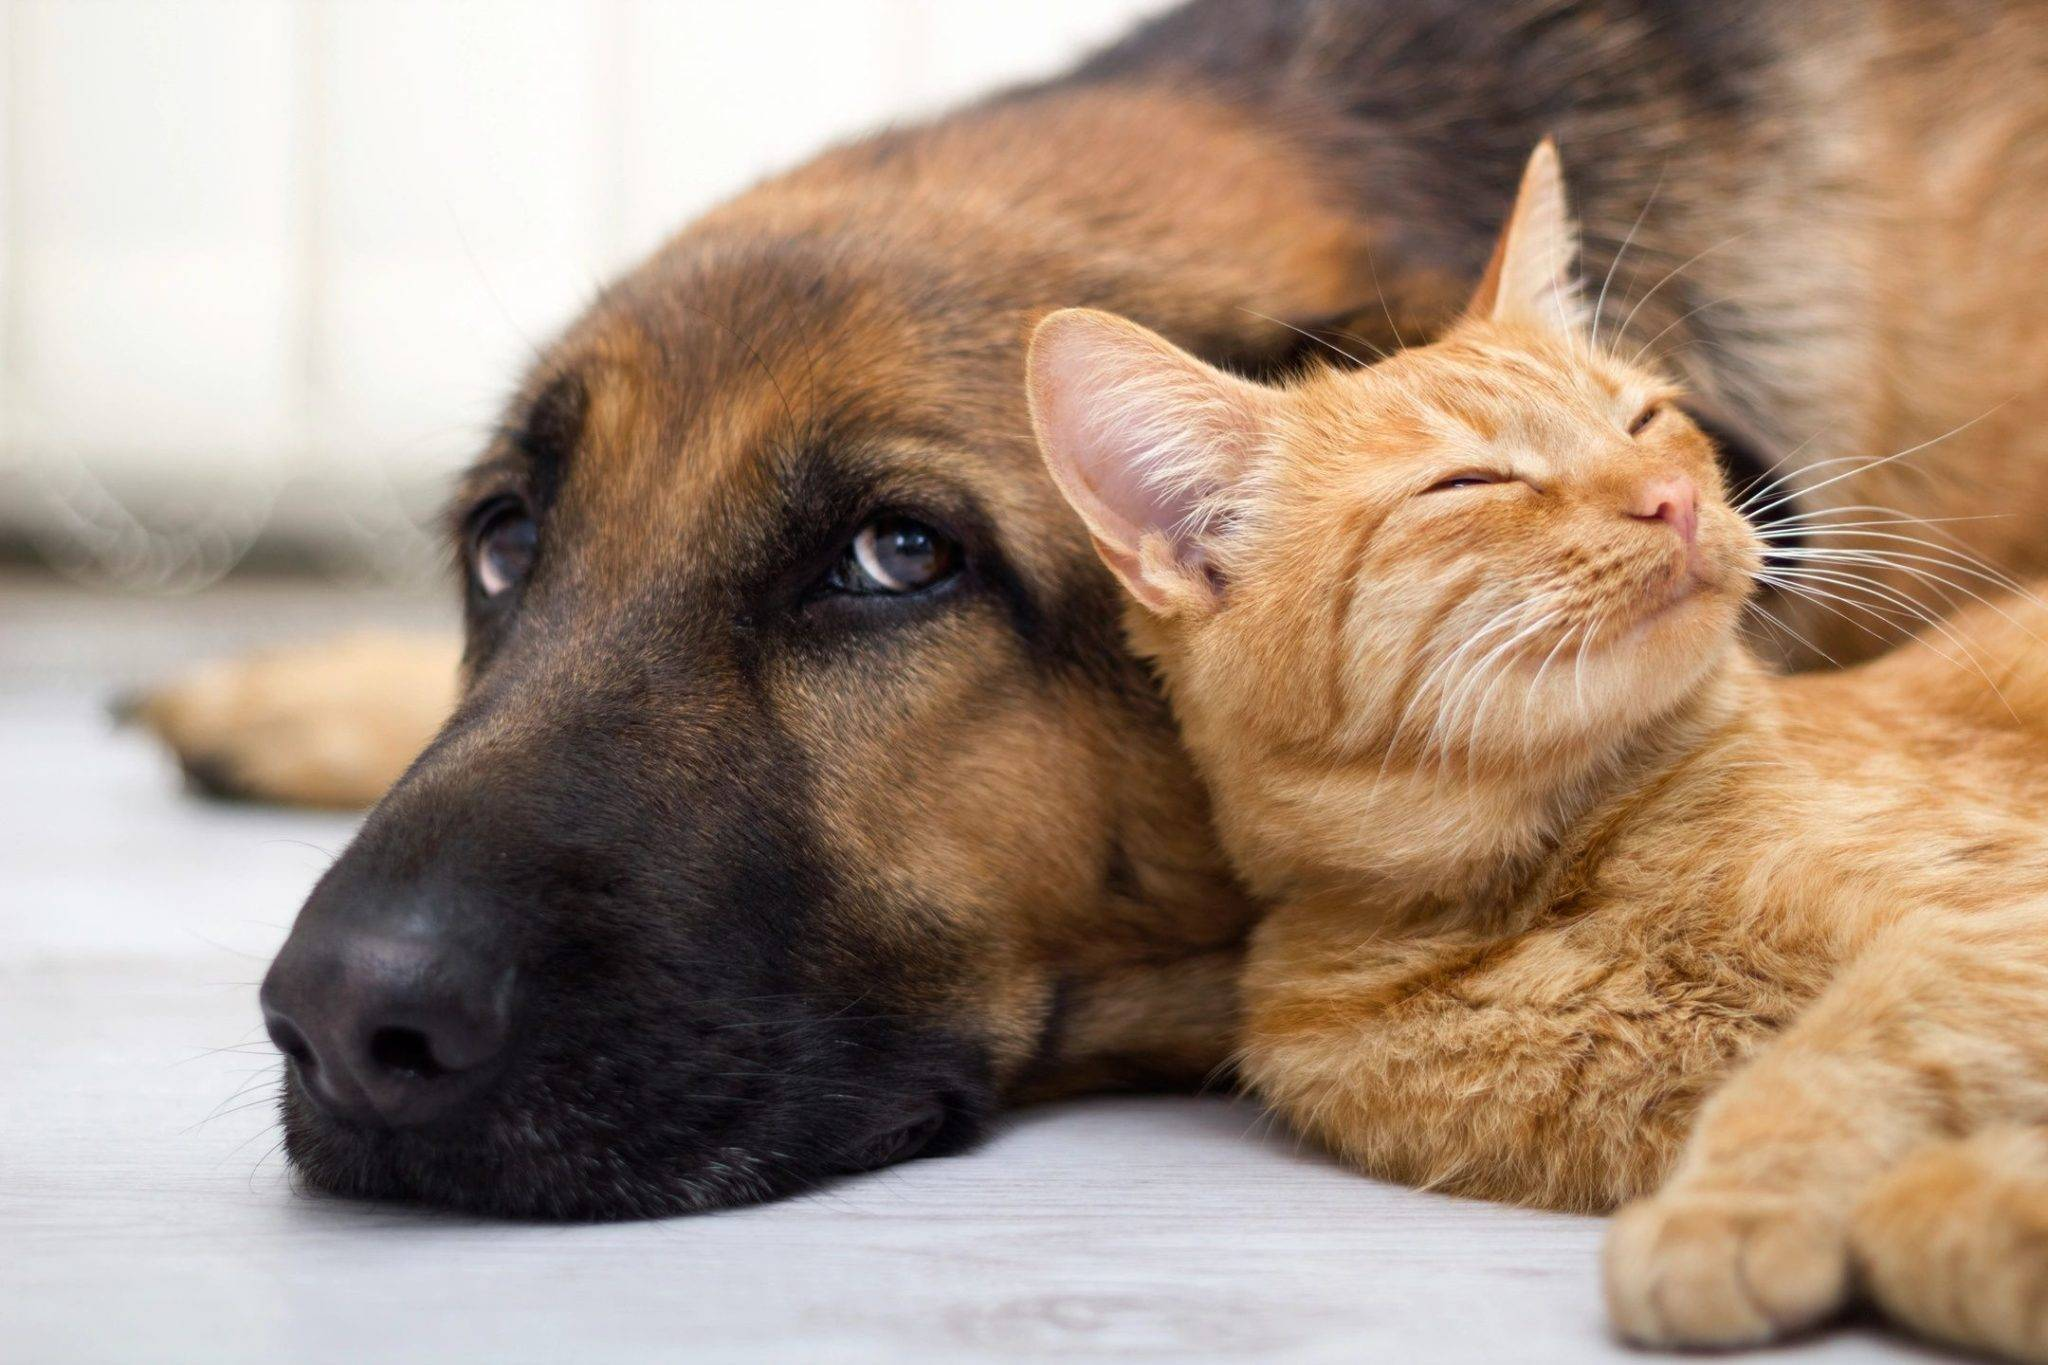 Pet Sitting Service Middlesex County NJ